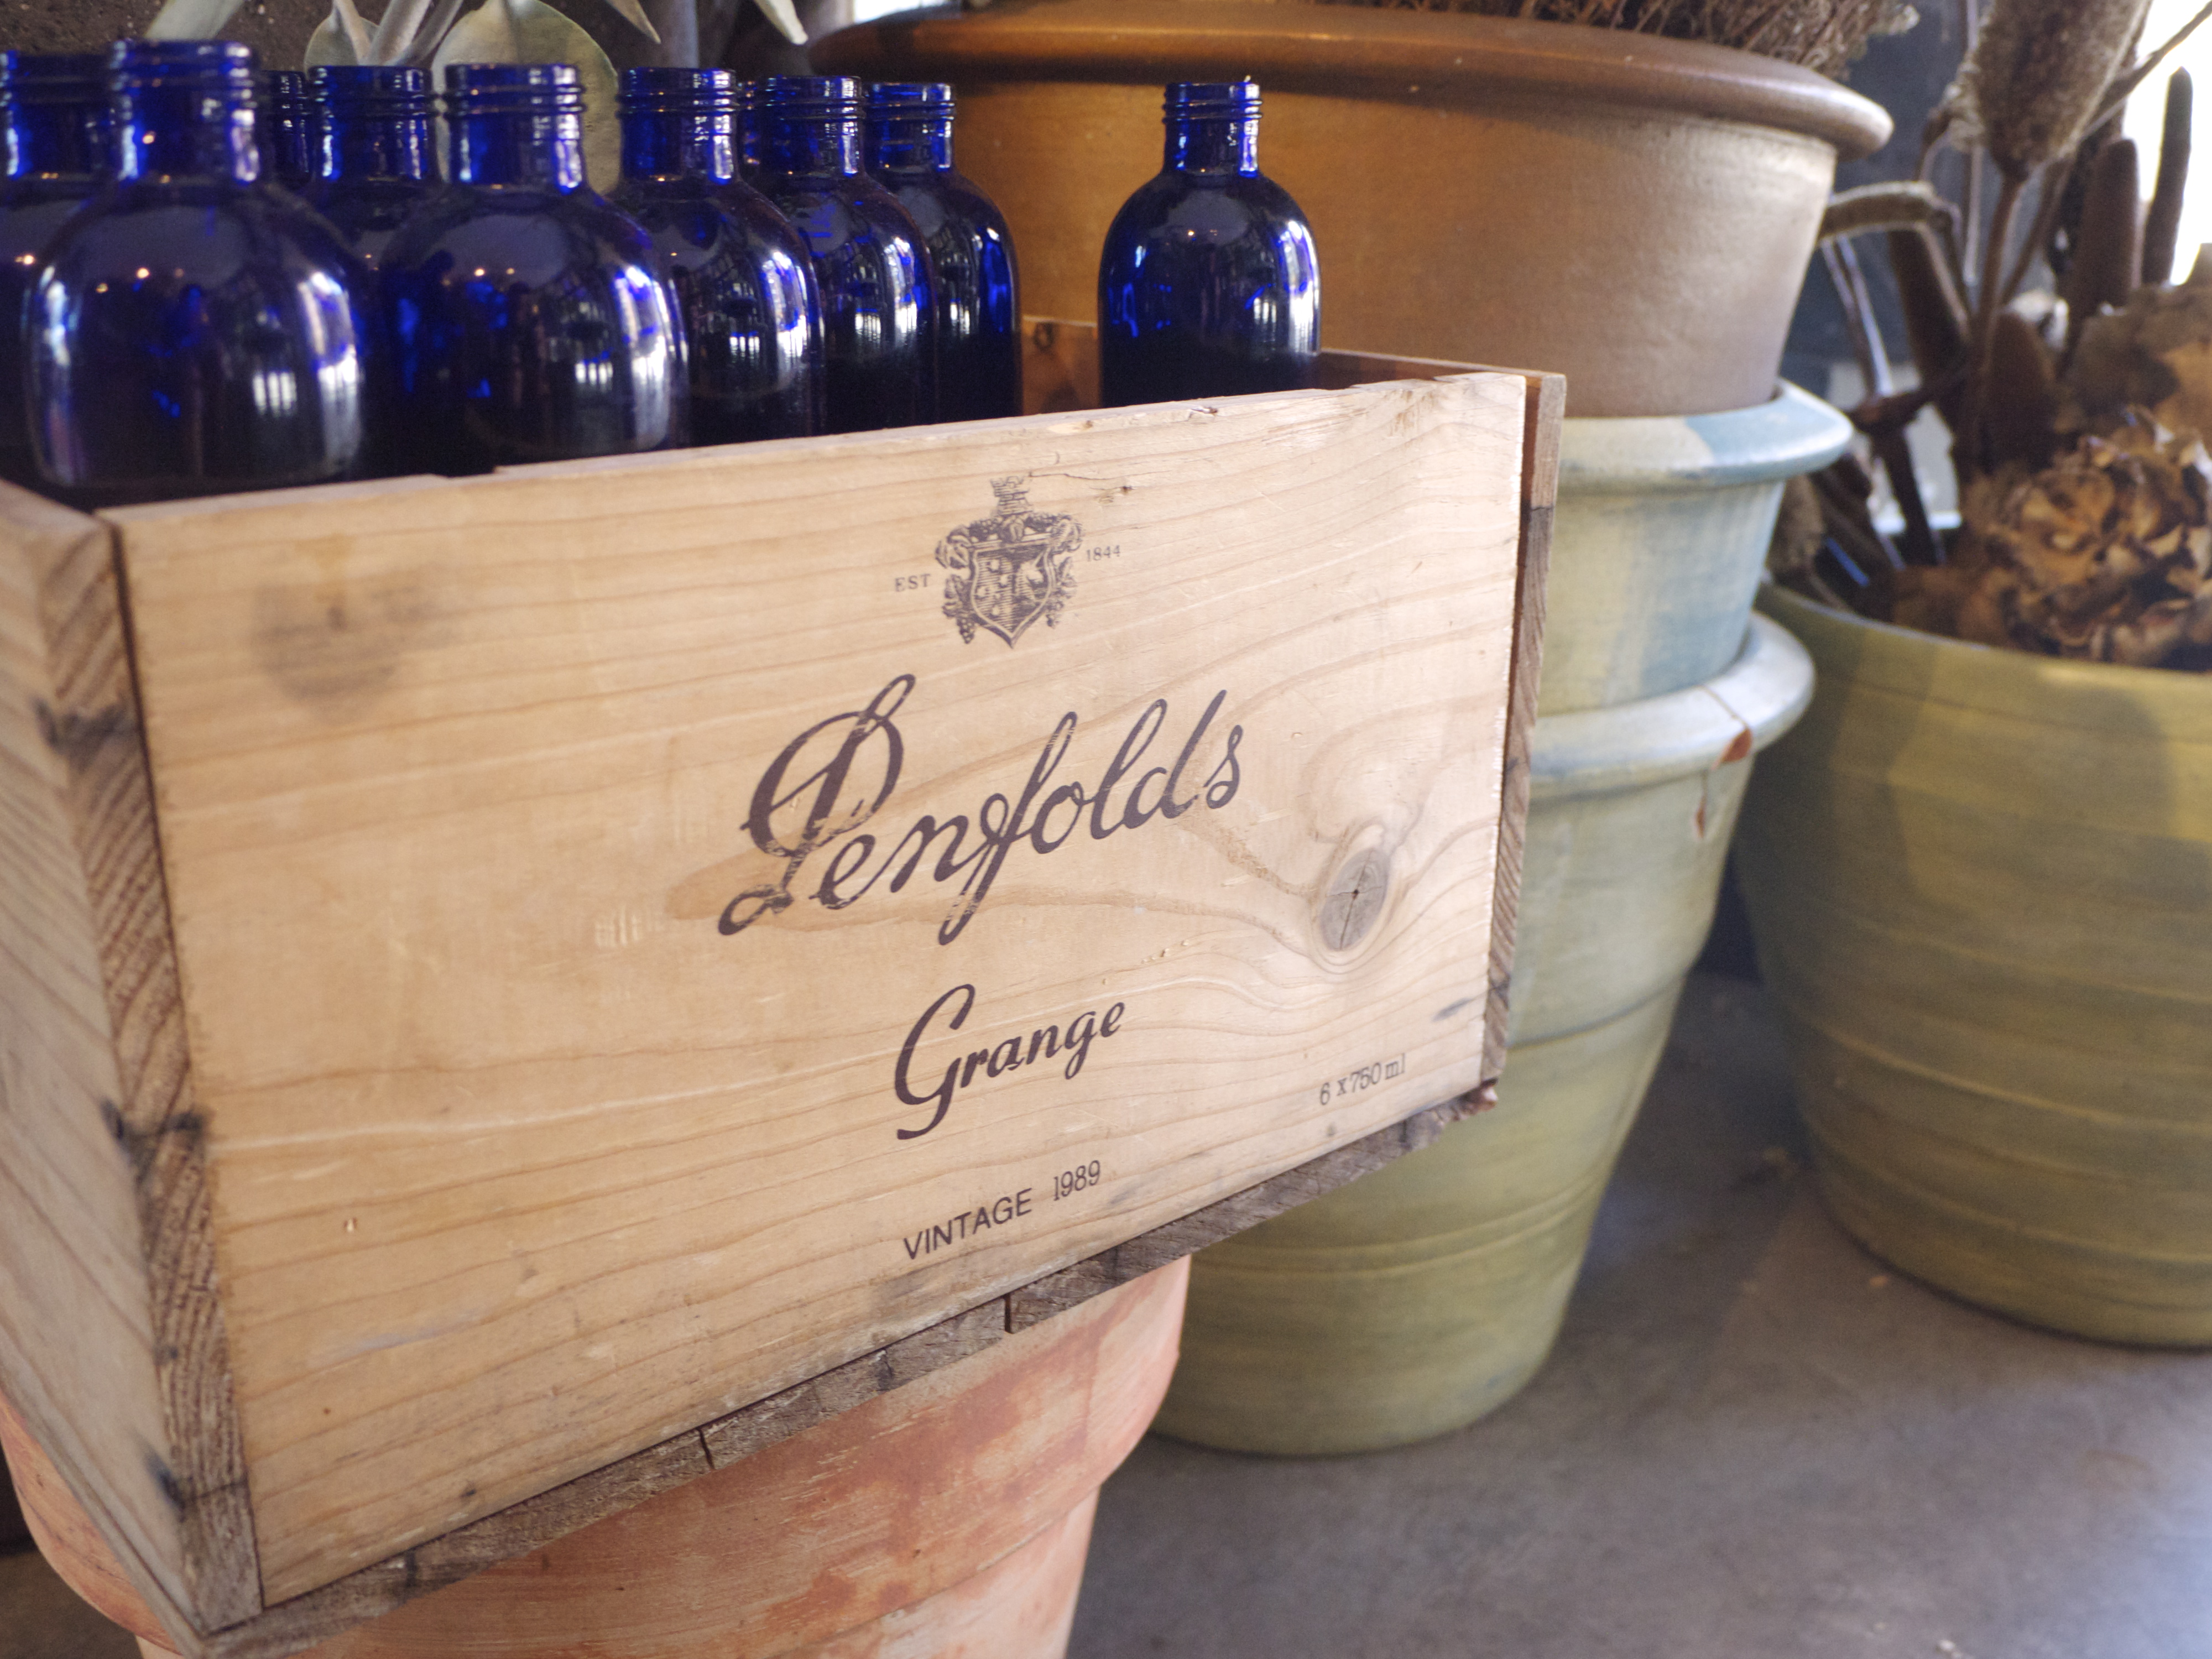 Penfolds Box Crate - Garlands Florist, Surry Hills